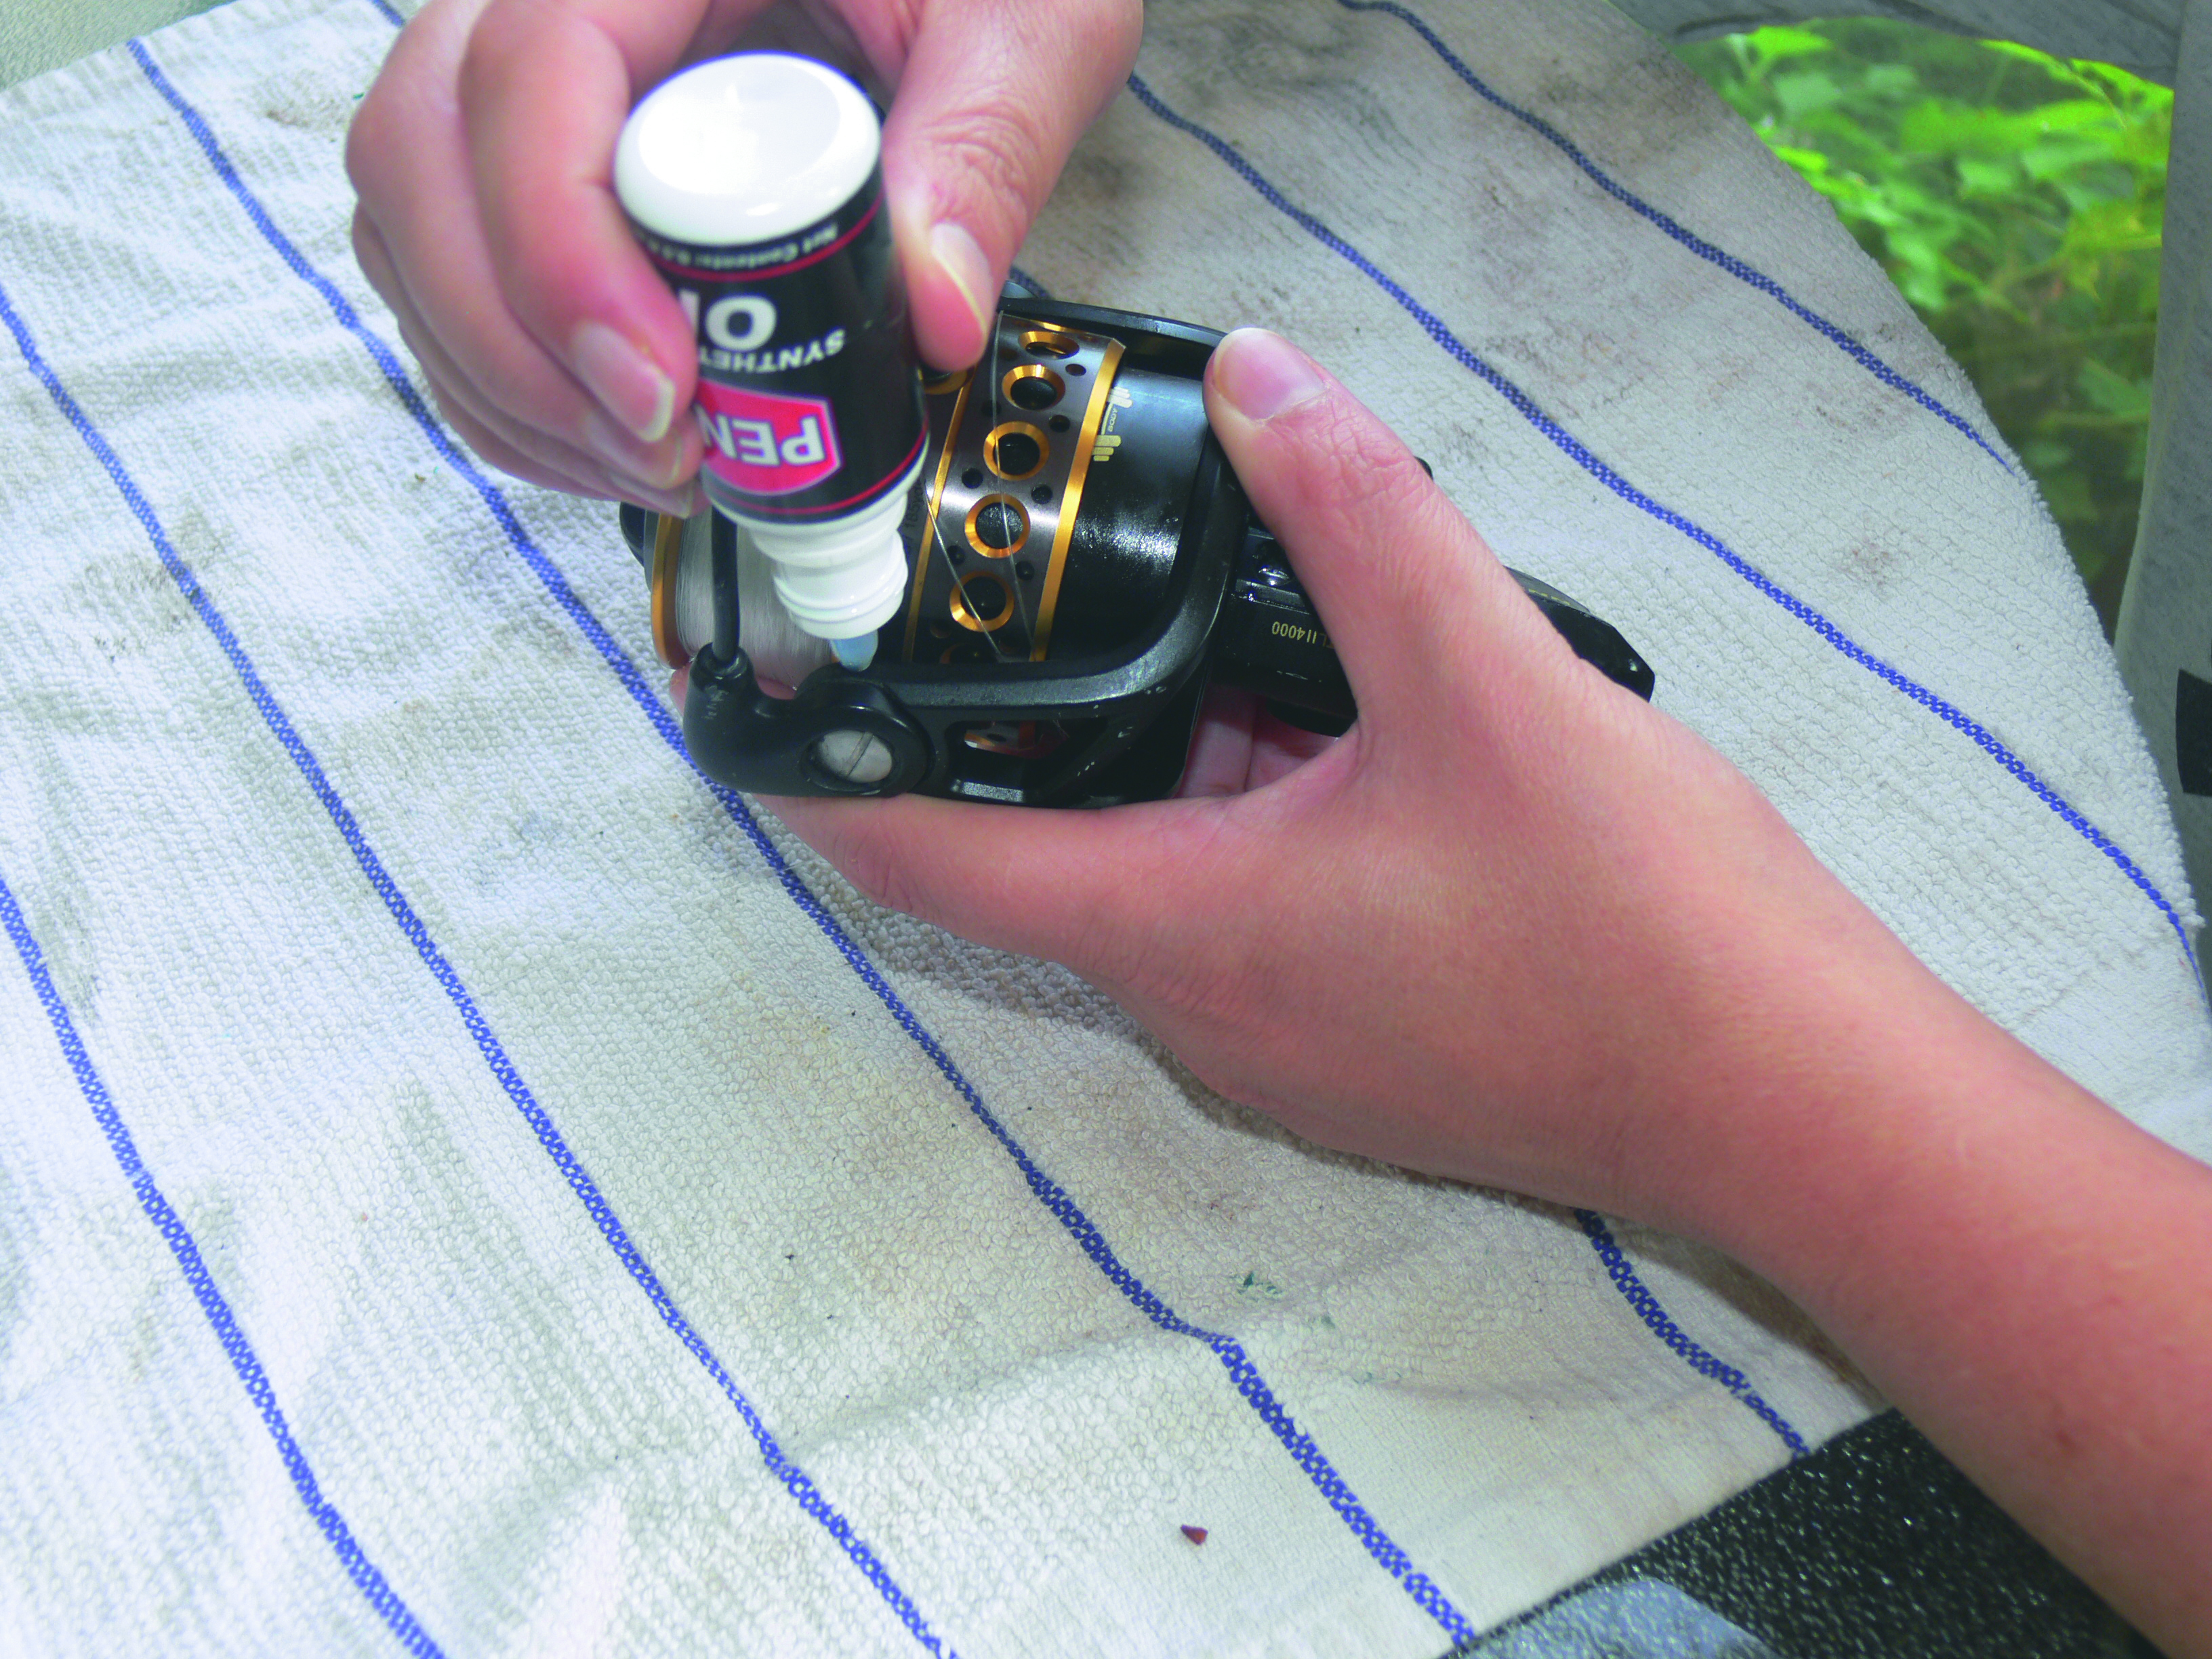 Step ten to maintain your spinning reel